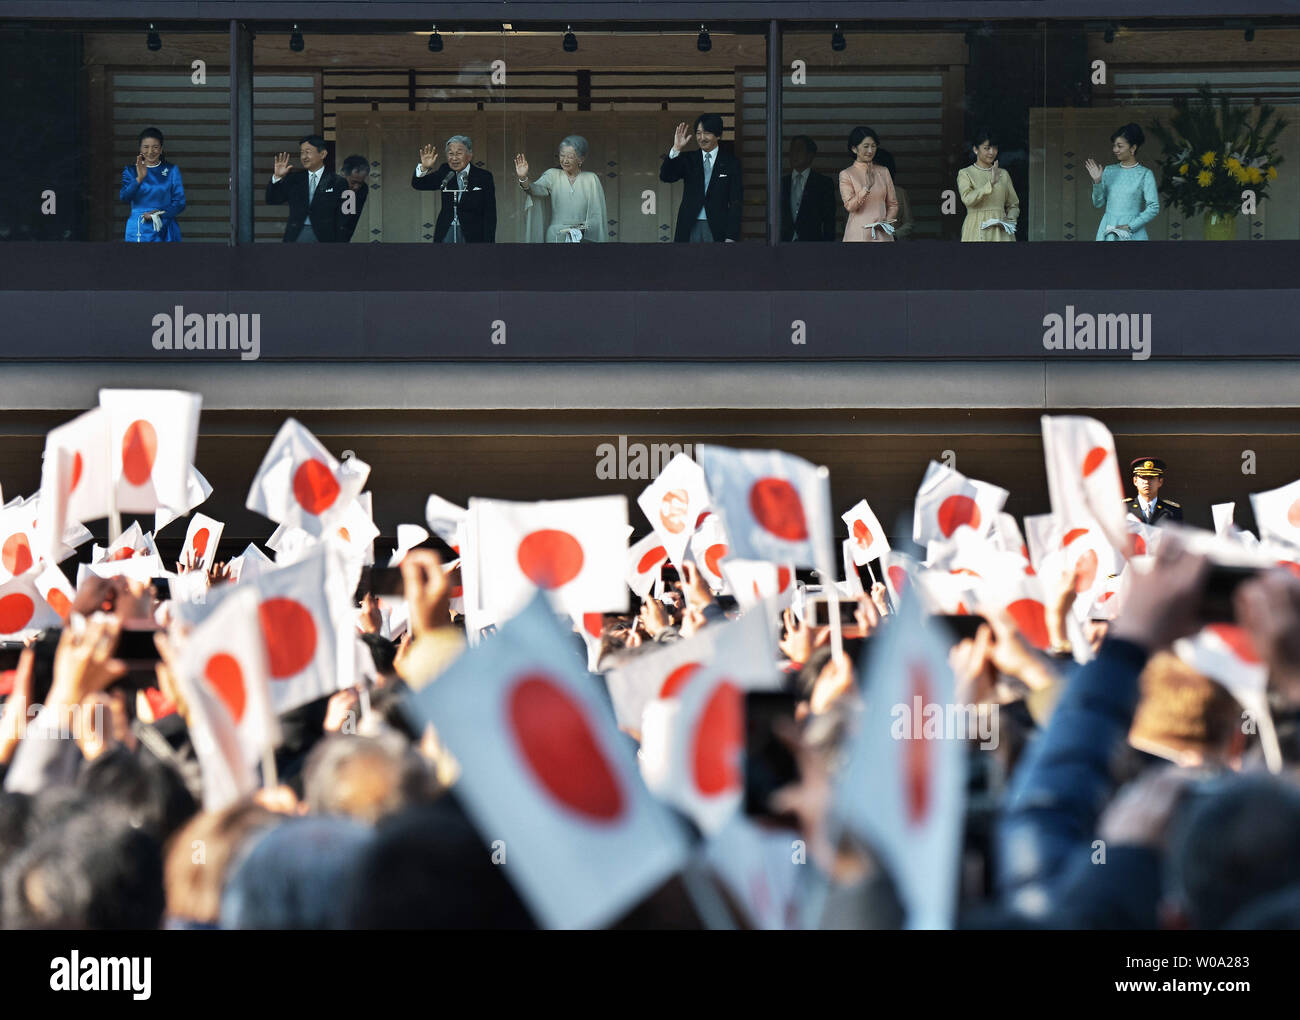 Japan's Emperor Akihito(L3) waves to well-wishers with Empress Michiko(L4), Crown prince Naruhito(L2), Crown princess Masako(L), Prince Akishino (R4), his wife Princess Kiko(R3), Princess  Mako(R2) and Princess Kako(R) during a new year greeting at the East Plaza, Imperial Palace in Tokyo, Japan, on January 2, 2017.     Photo by Keizo Mori/UPI - Stock Image